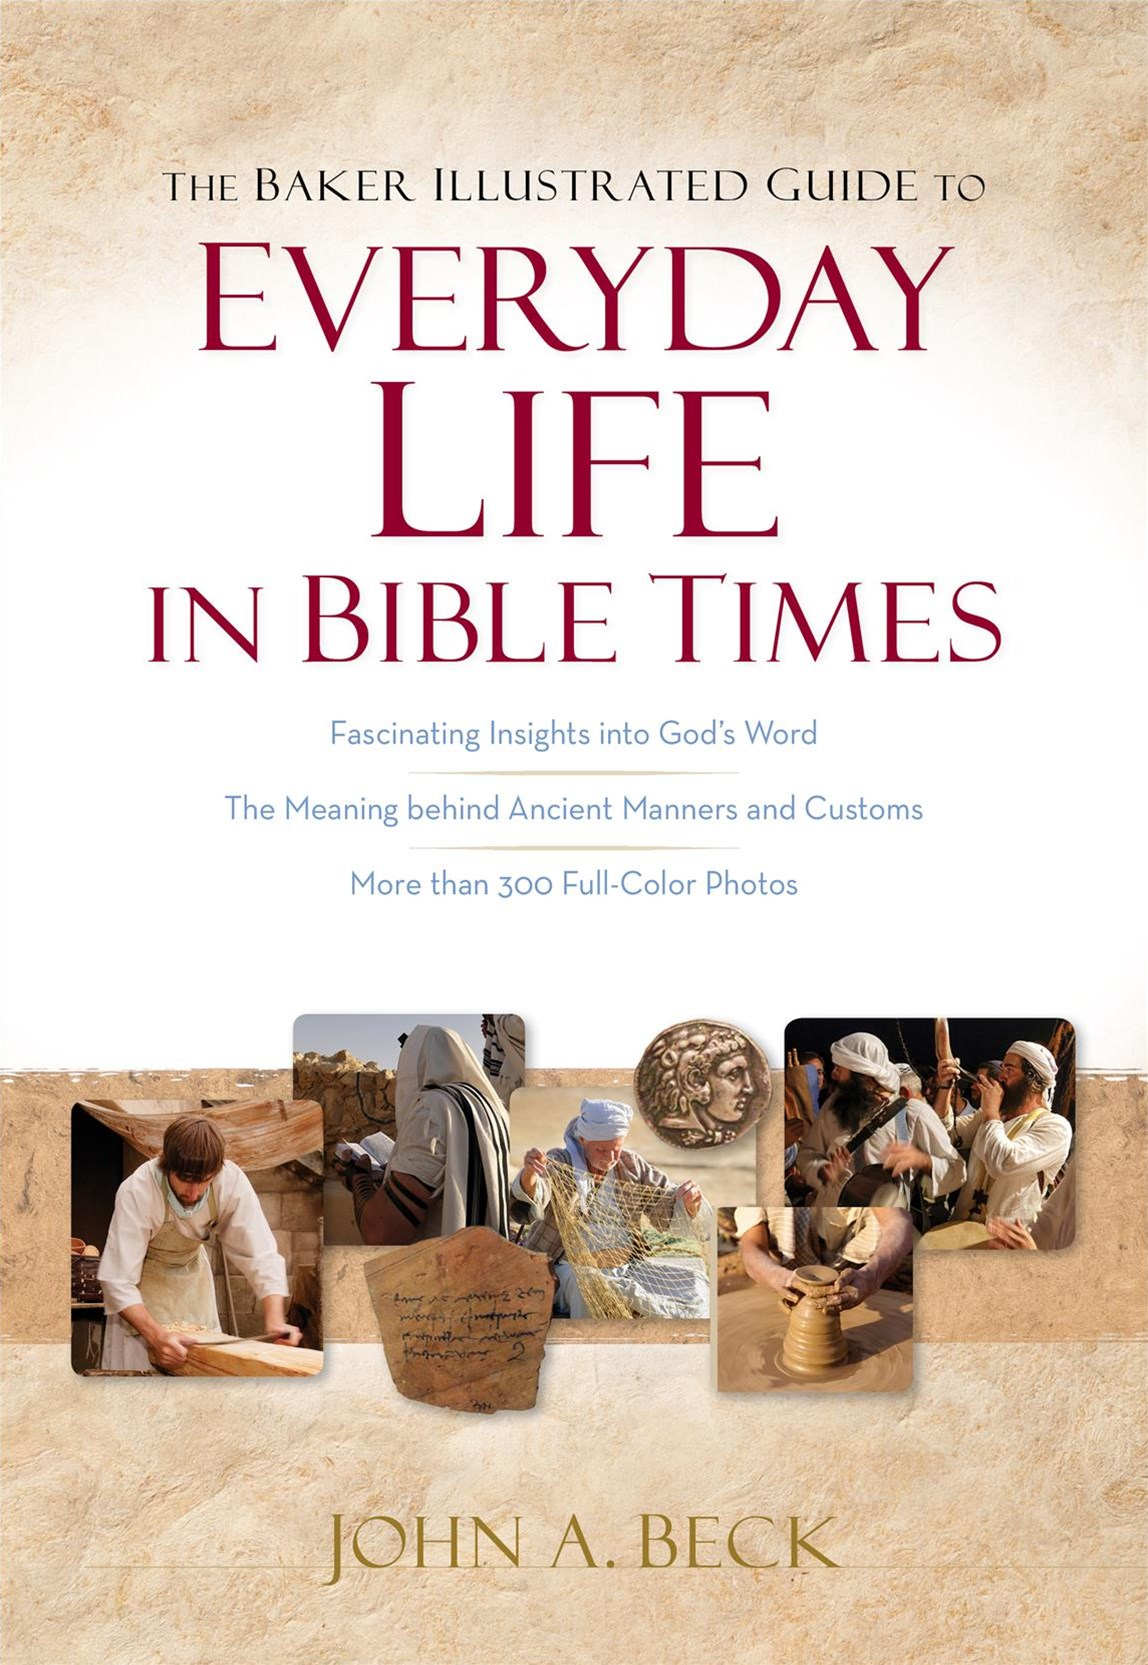 Baker Illustrated Guide to Everyday Life in Bible Times